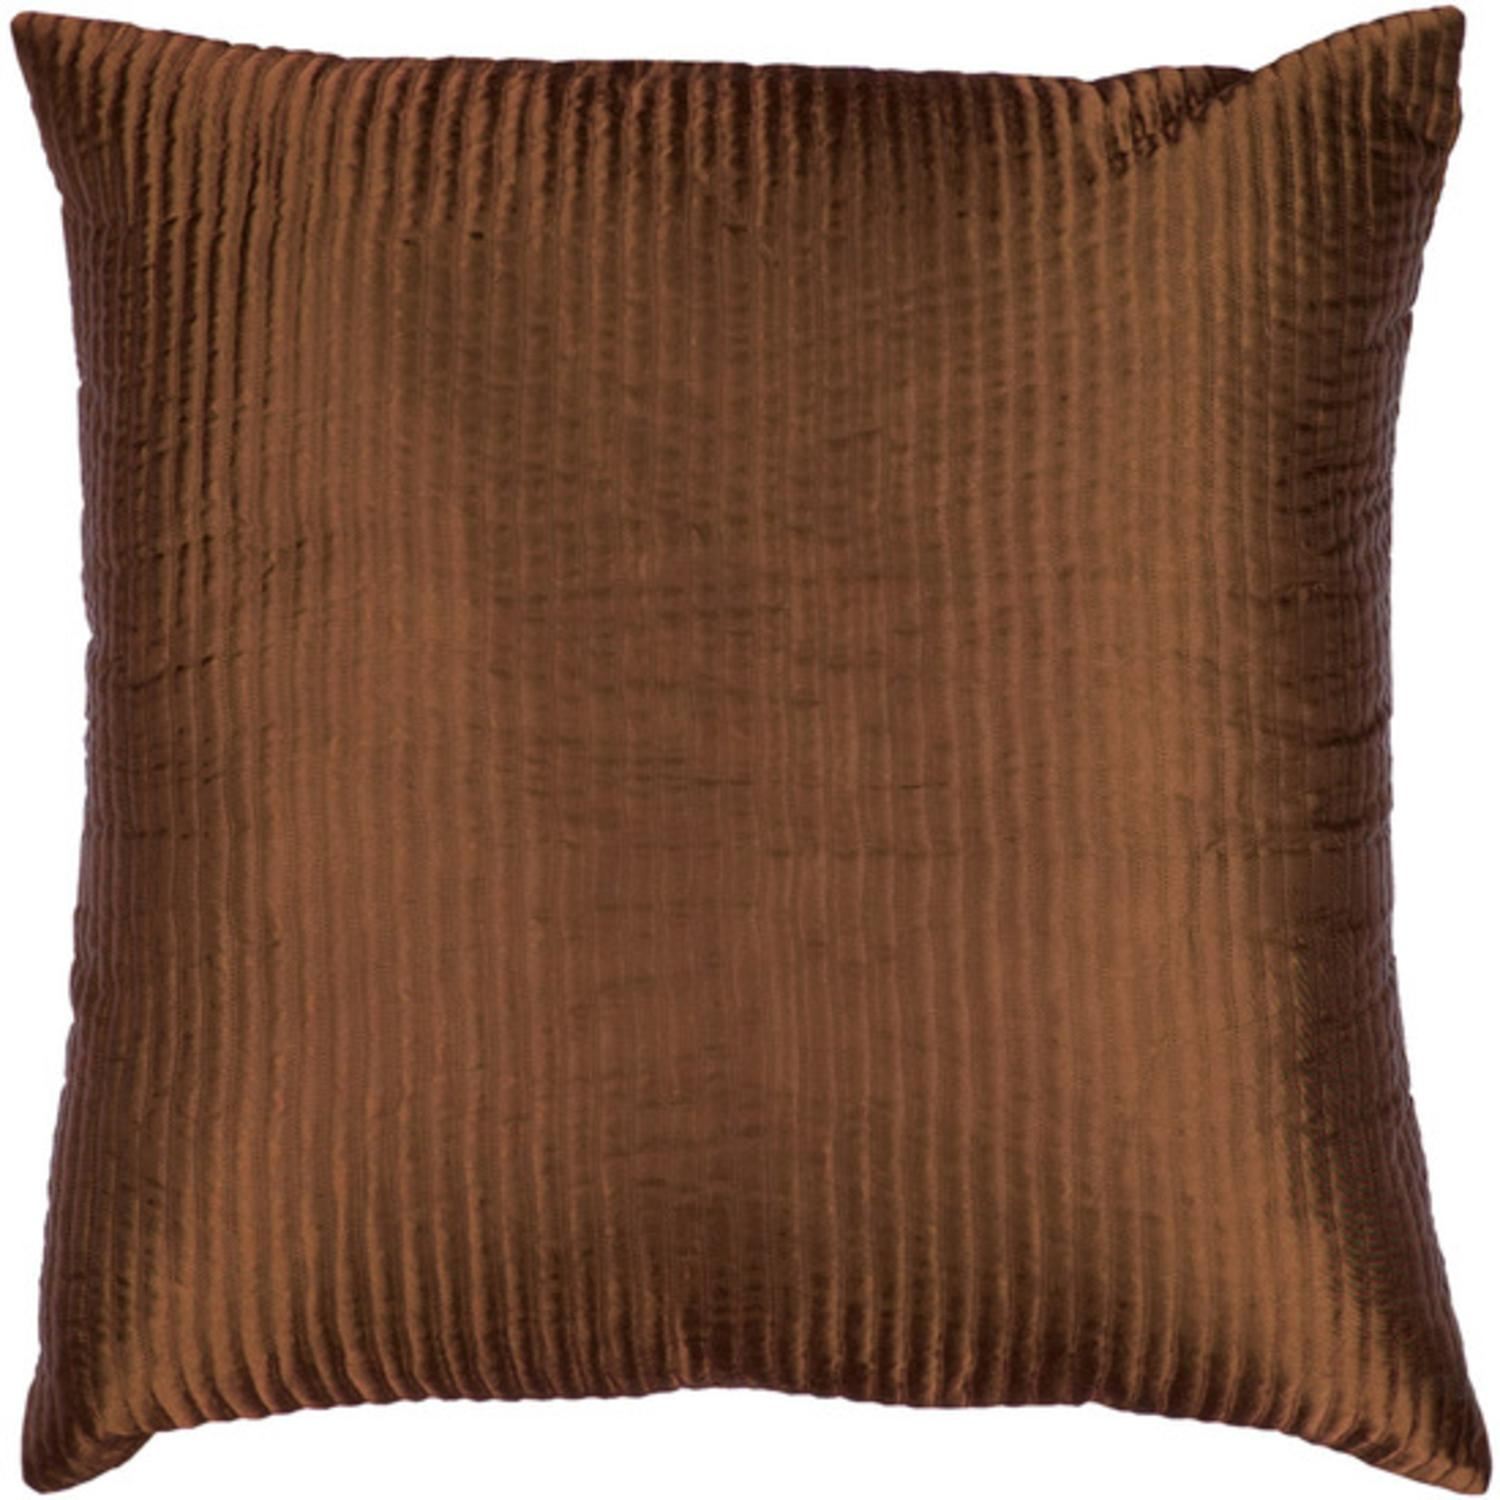 "20"" Chocolate Brown Shiny Ribbed Decorative Down Throw Pillow"